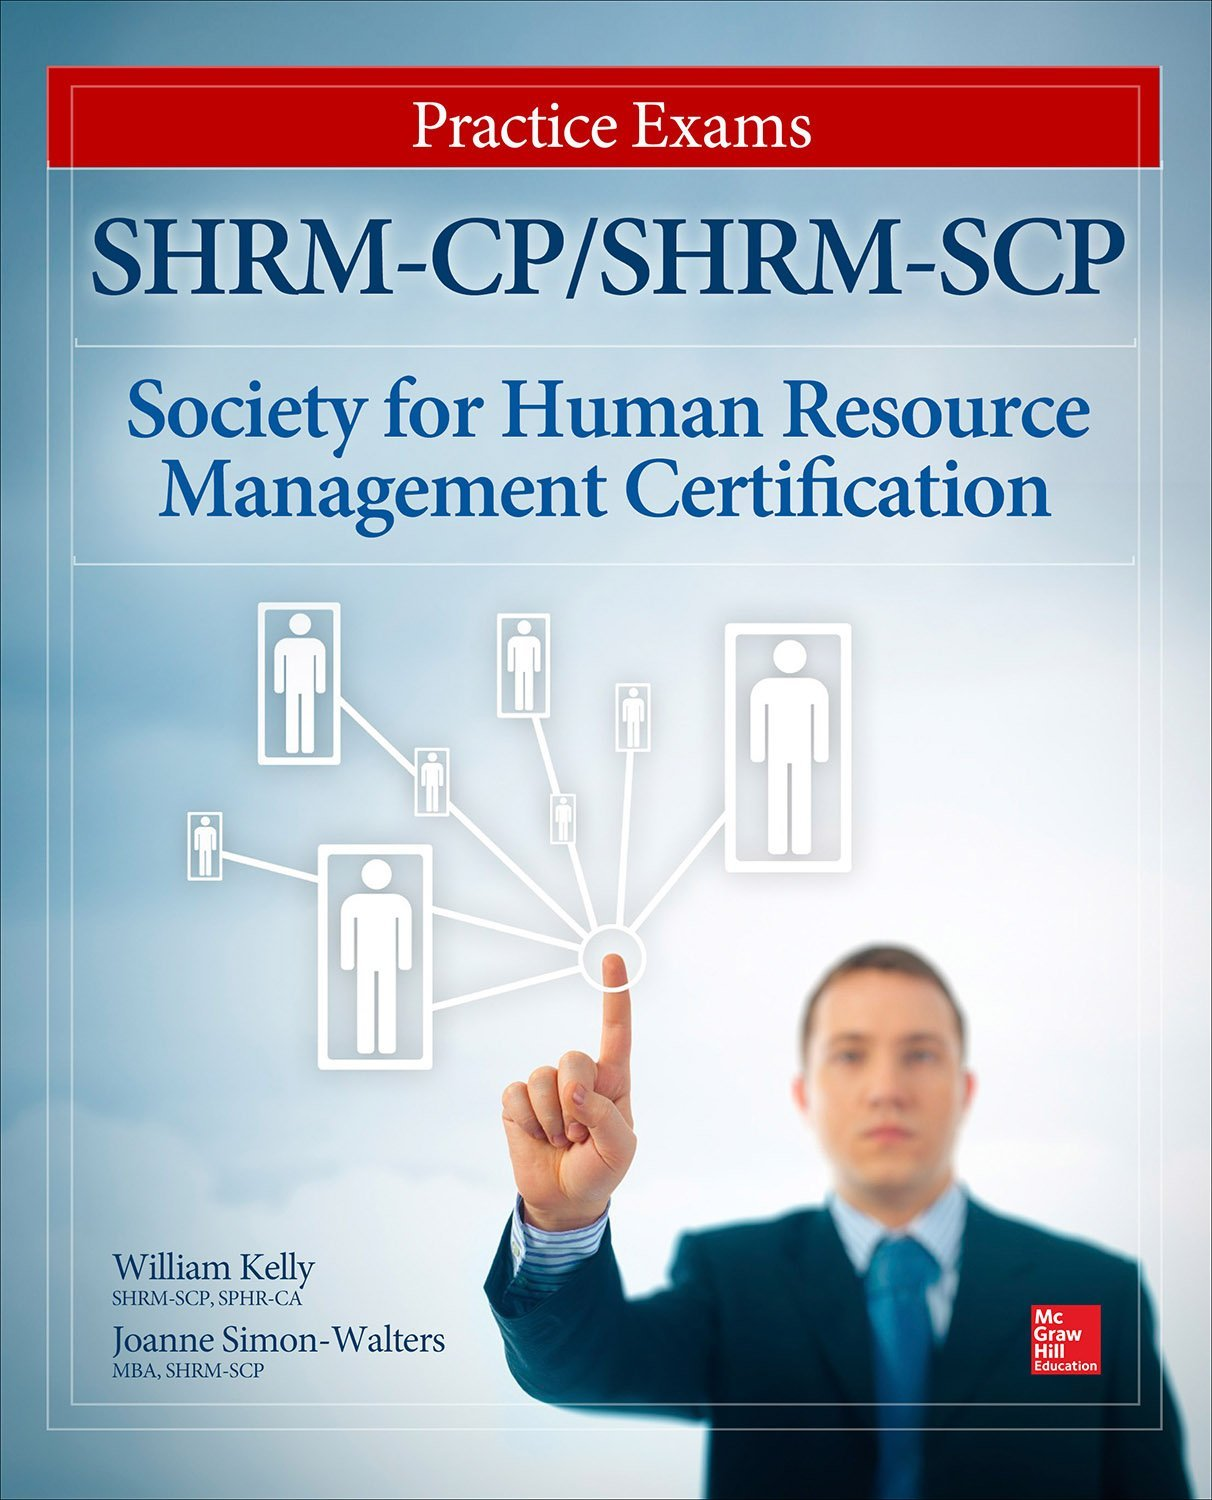 Buy shrm cpshrm scp certification practice exams all in one buy shrm cpshrm scp certification practice exams all in one book online at low prices in india shrm cpshrm scp certification practice exams all in 1betcityfo Images